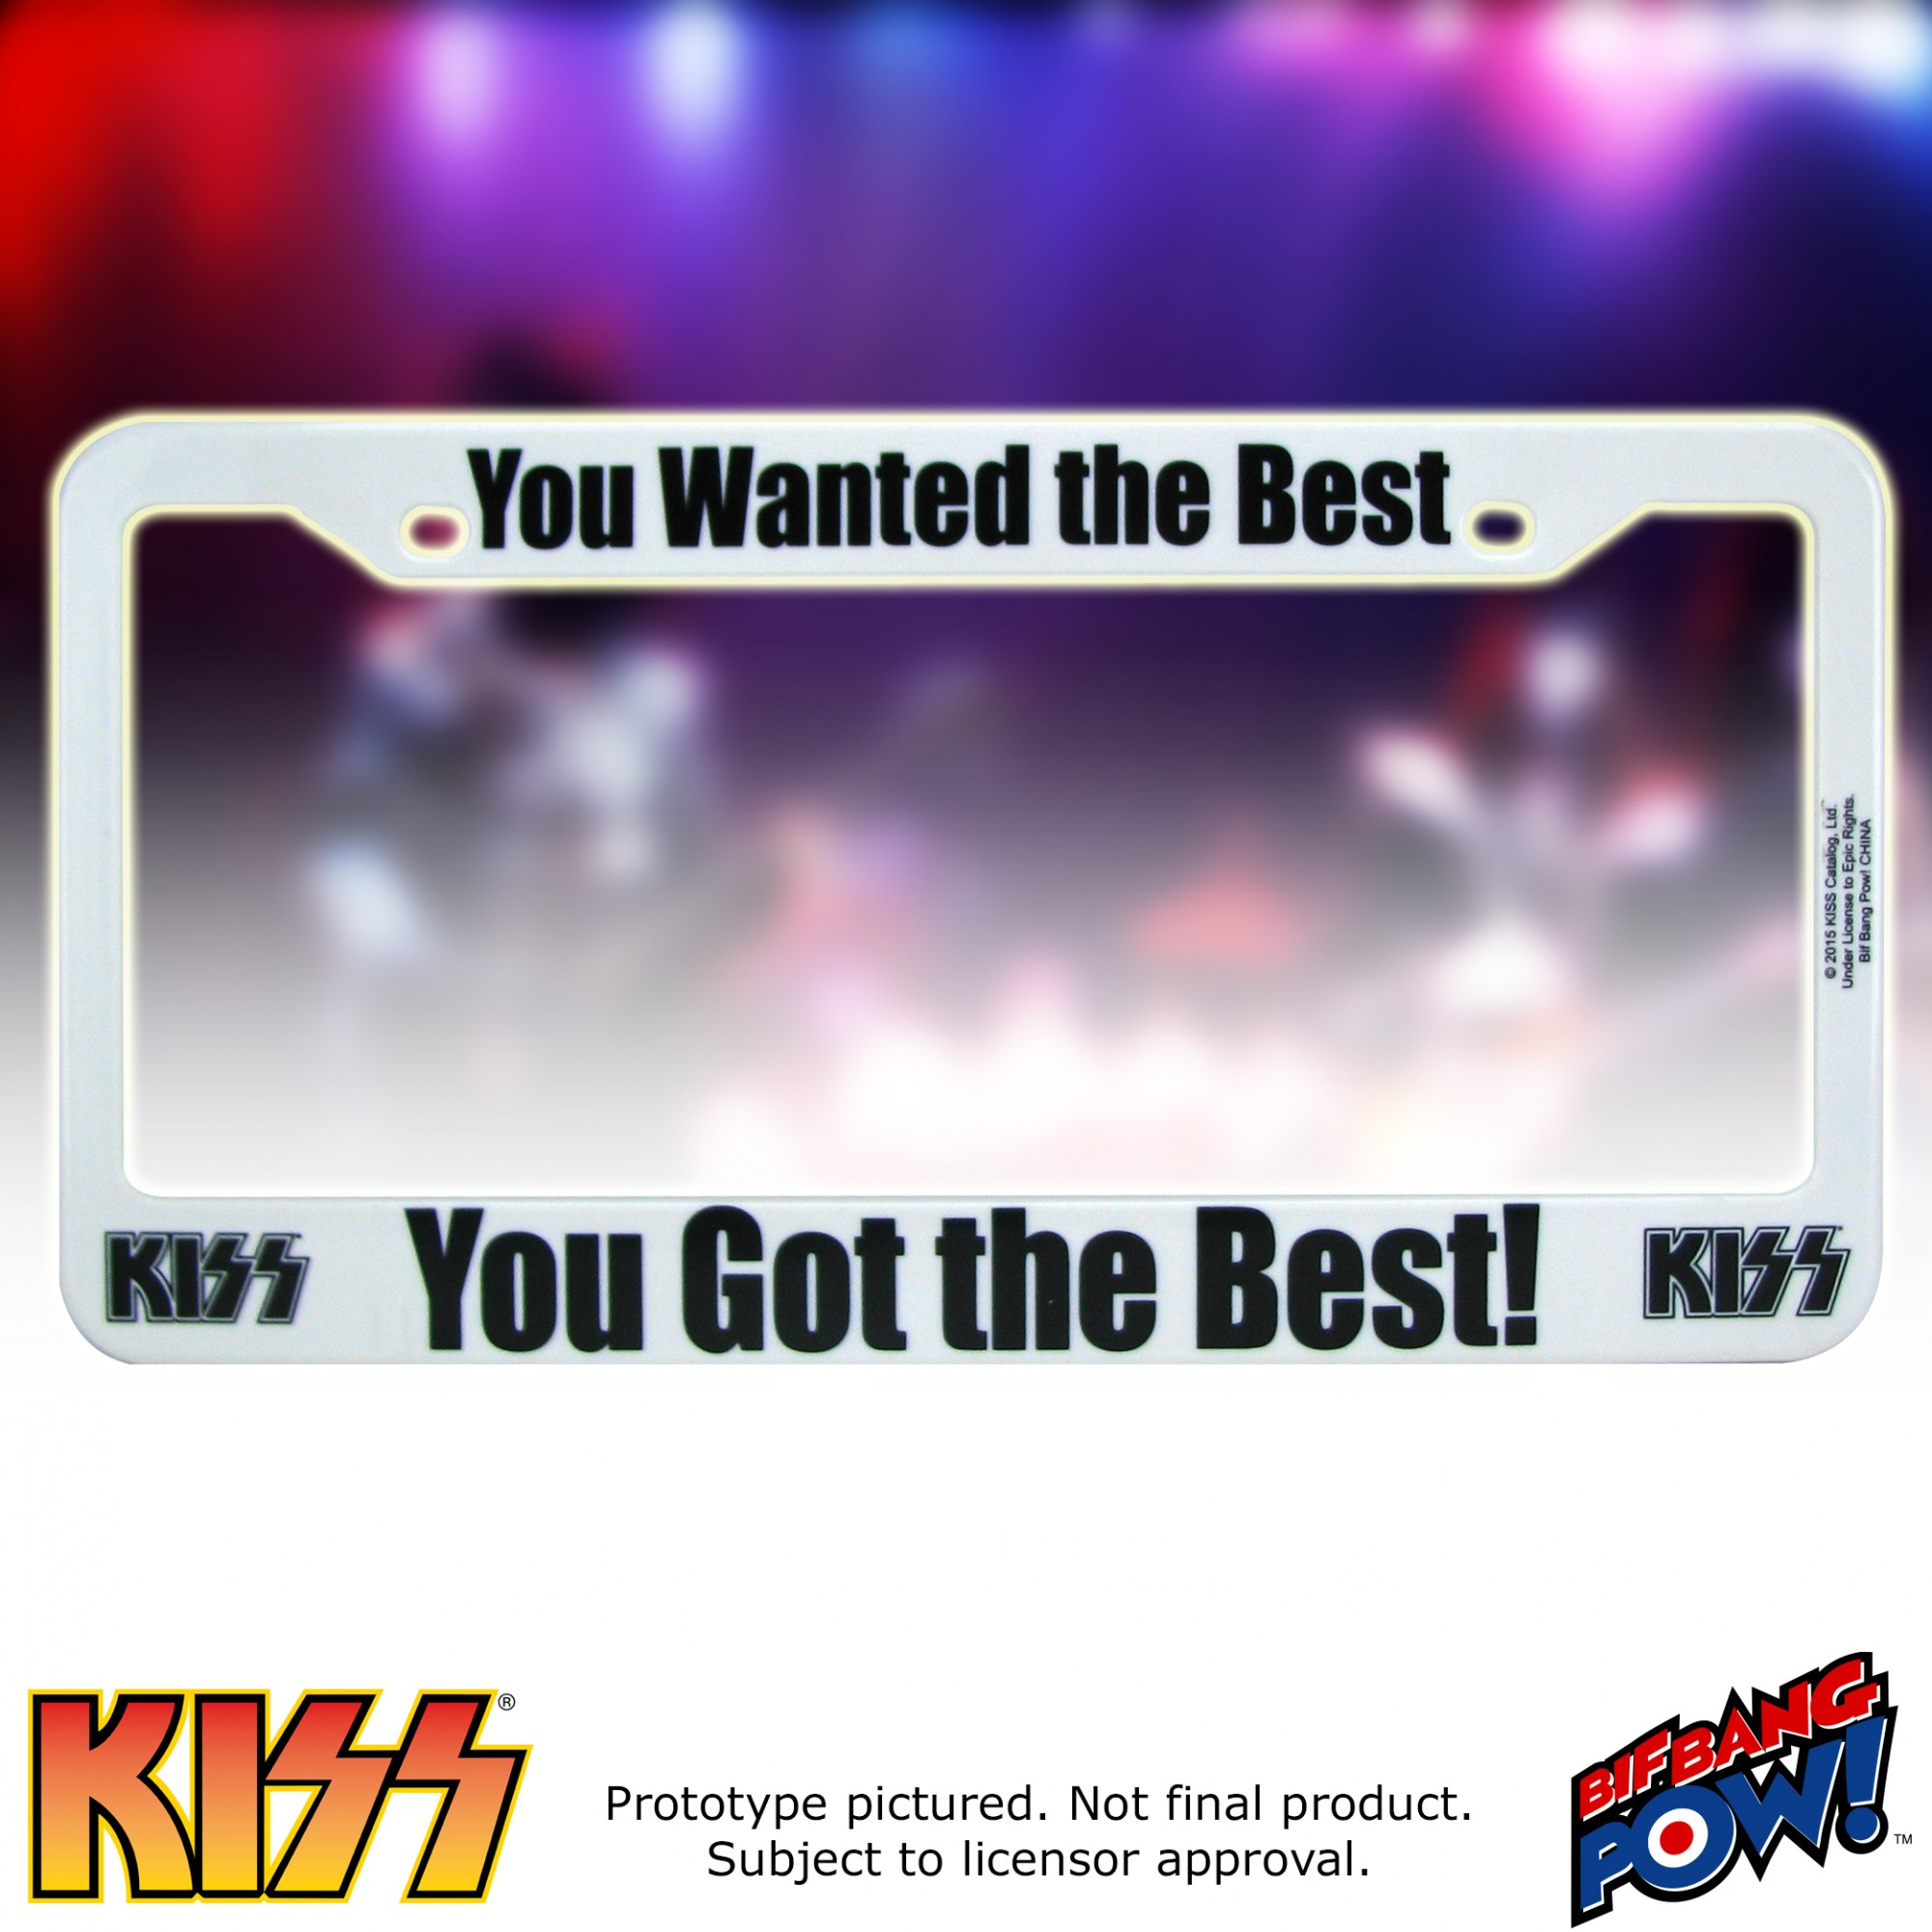 BBP29804_KISS-You-Wanted-the-Best-LPF_hires